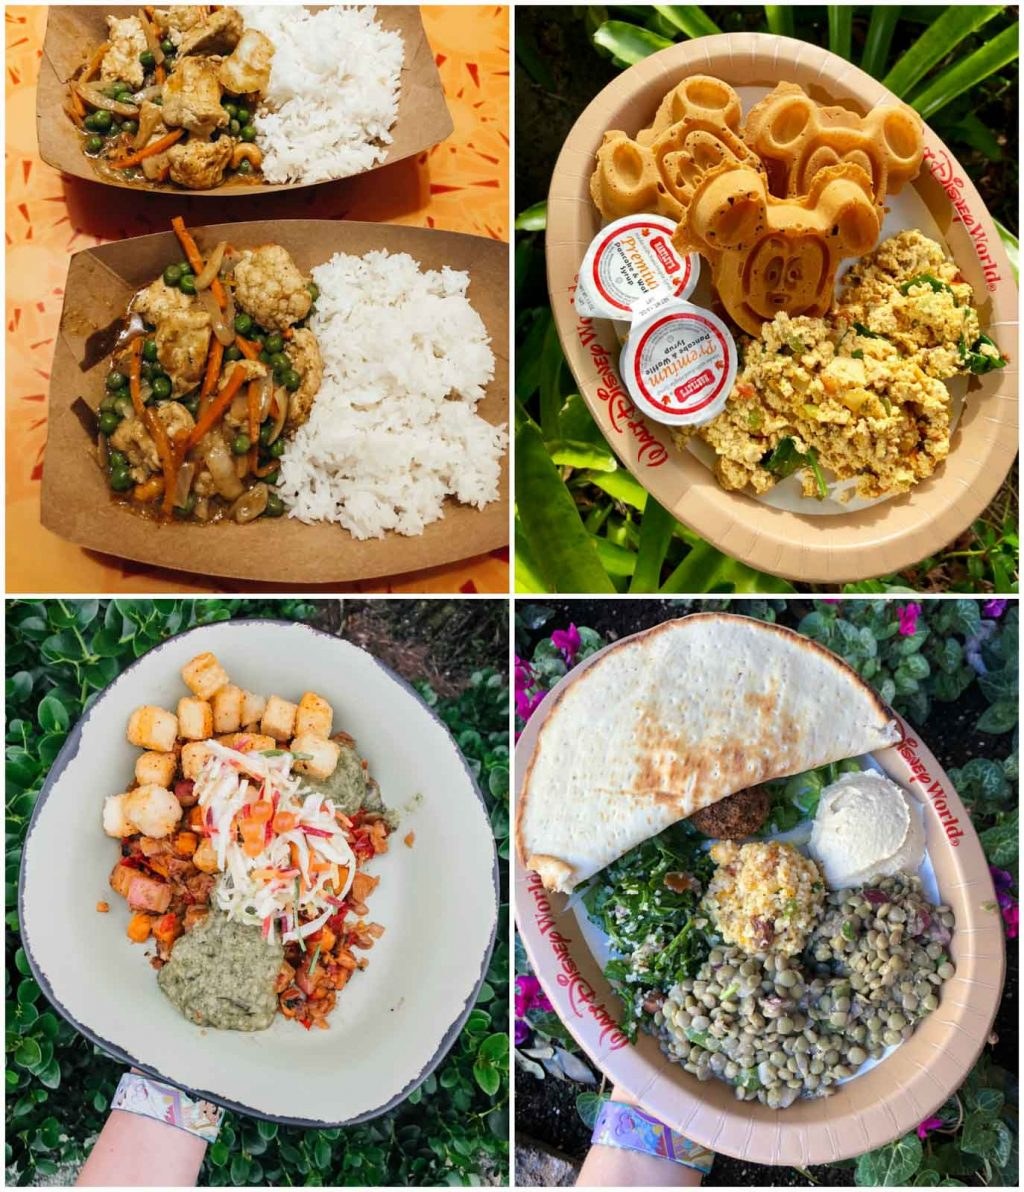 A photo collage showing multiple veganism food options at Disney World.